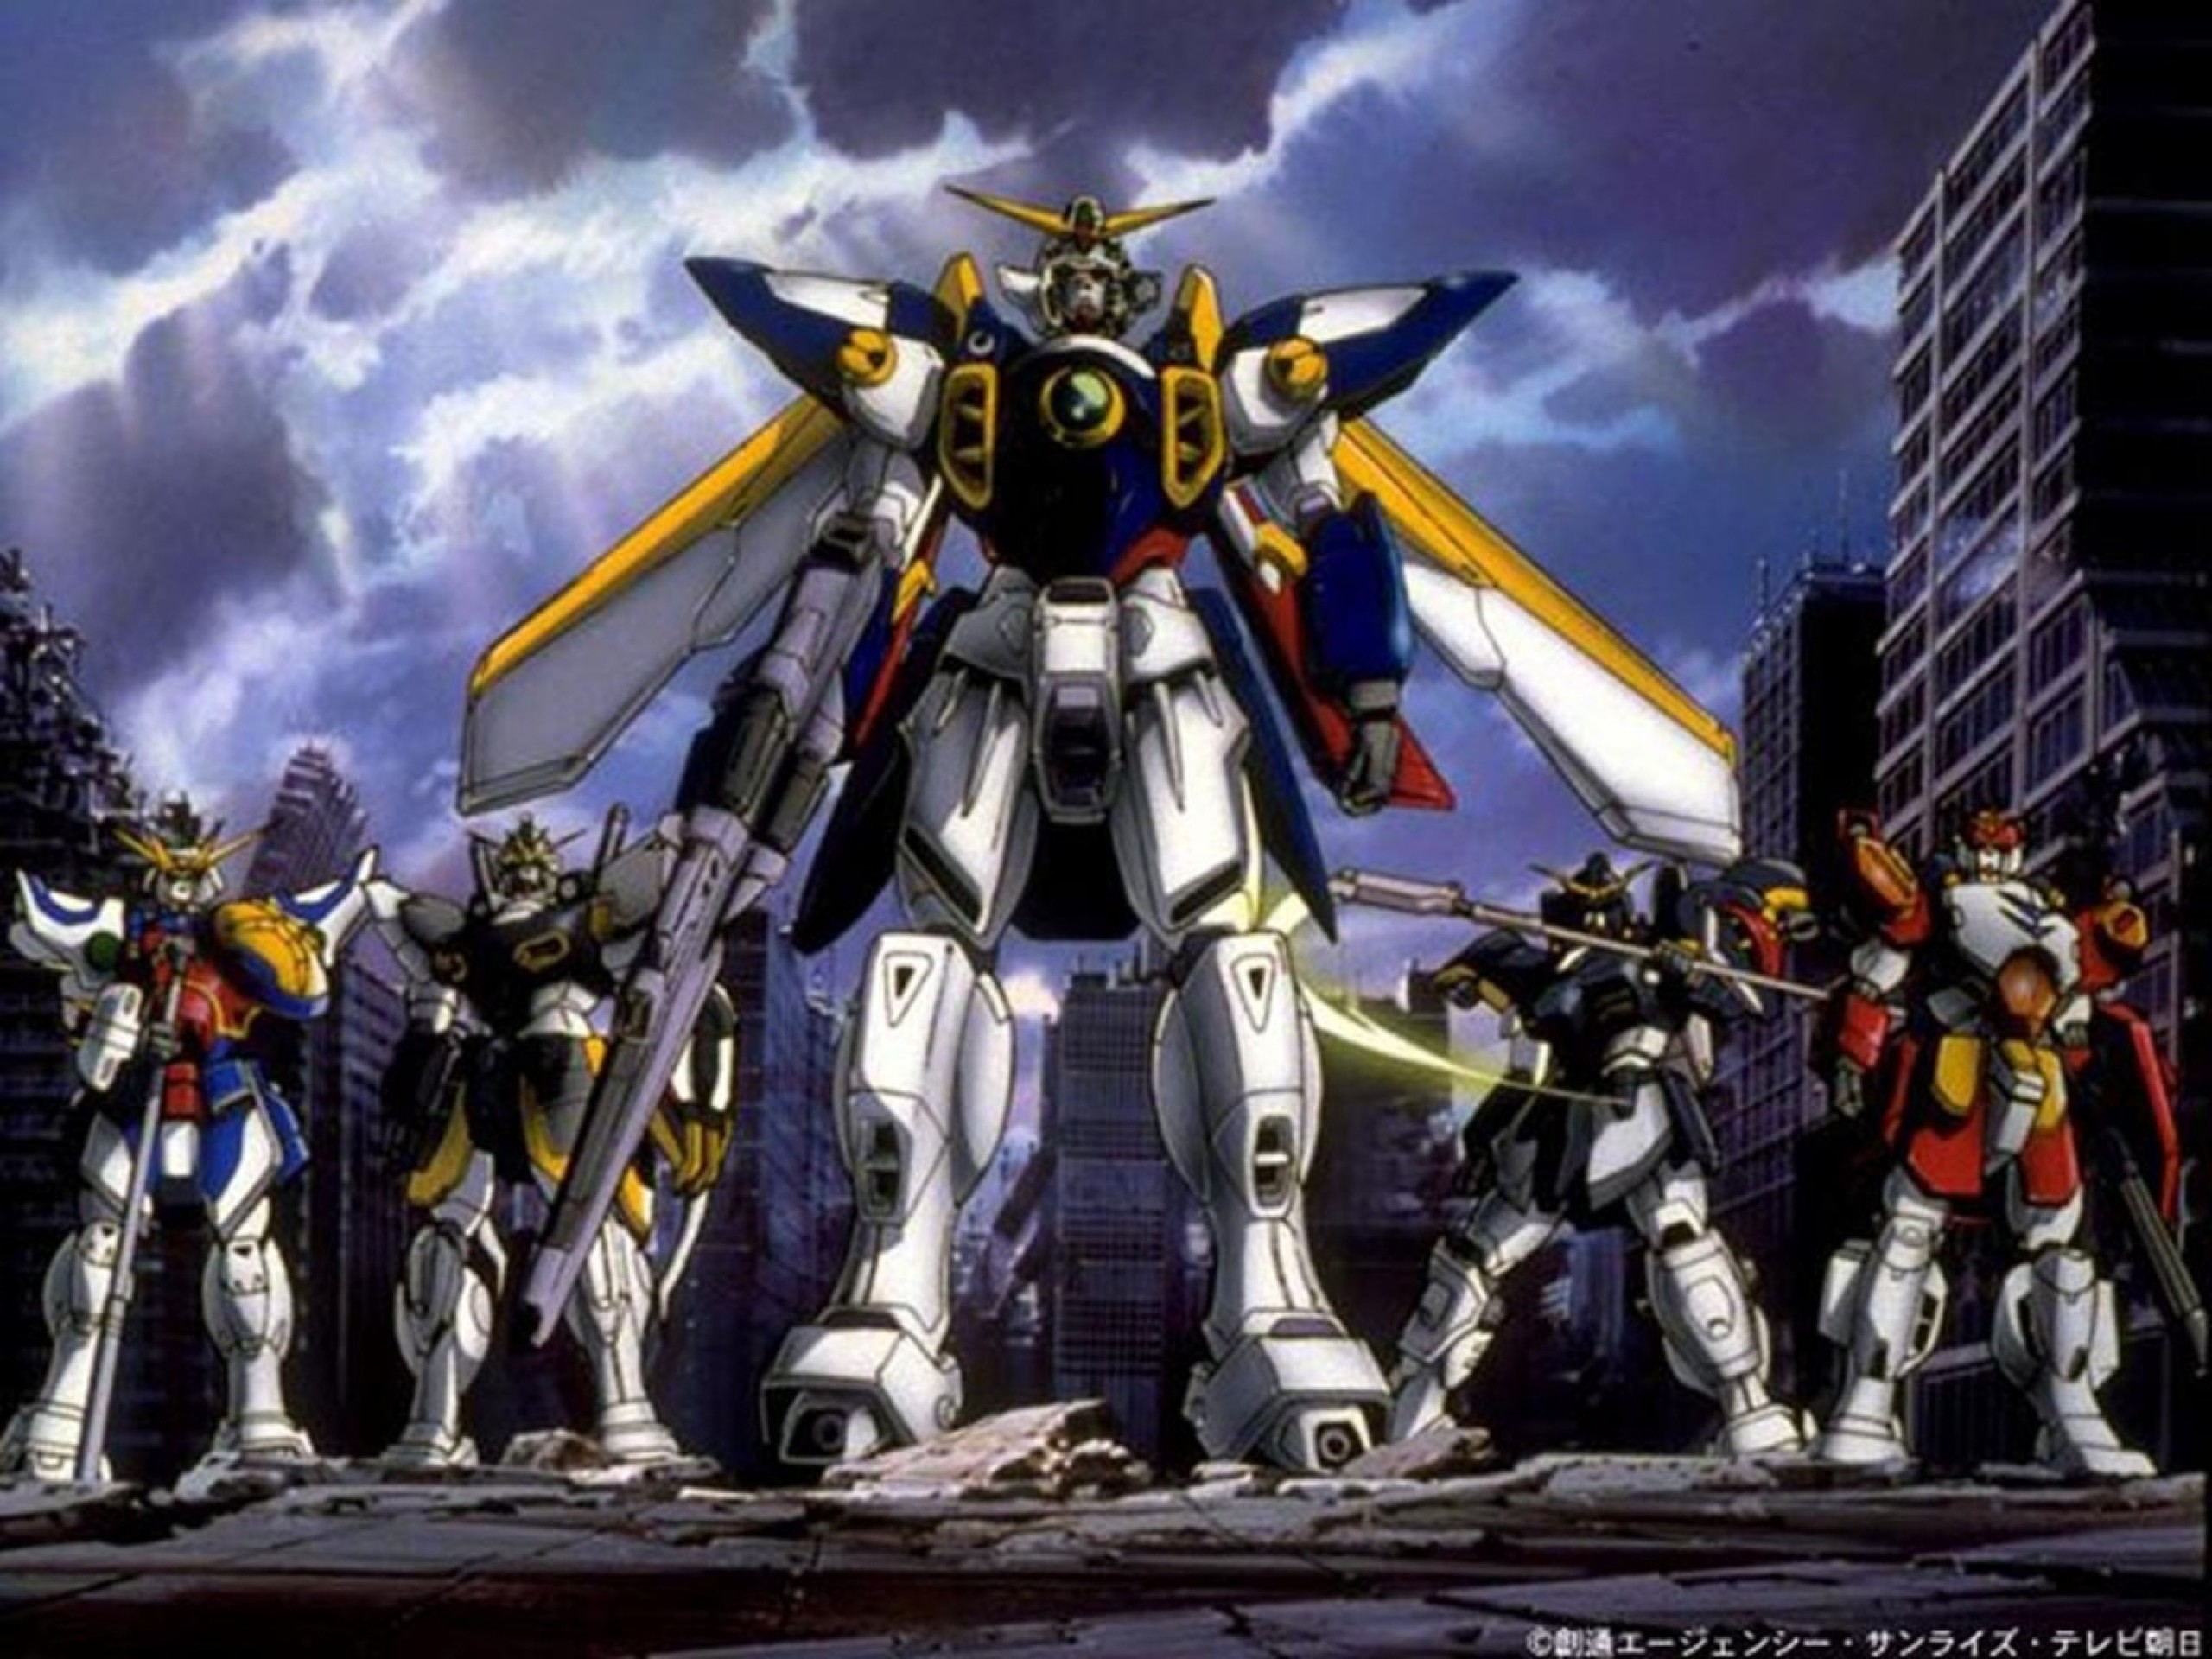 edit: the Death Scythe and Gundam zero mobile suits …